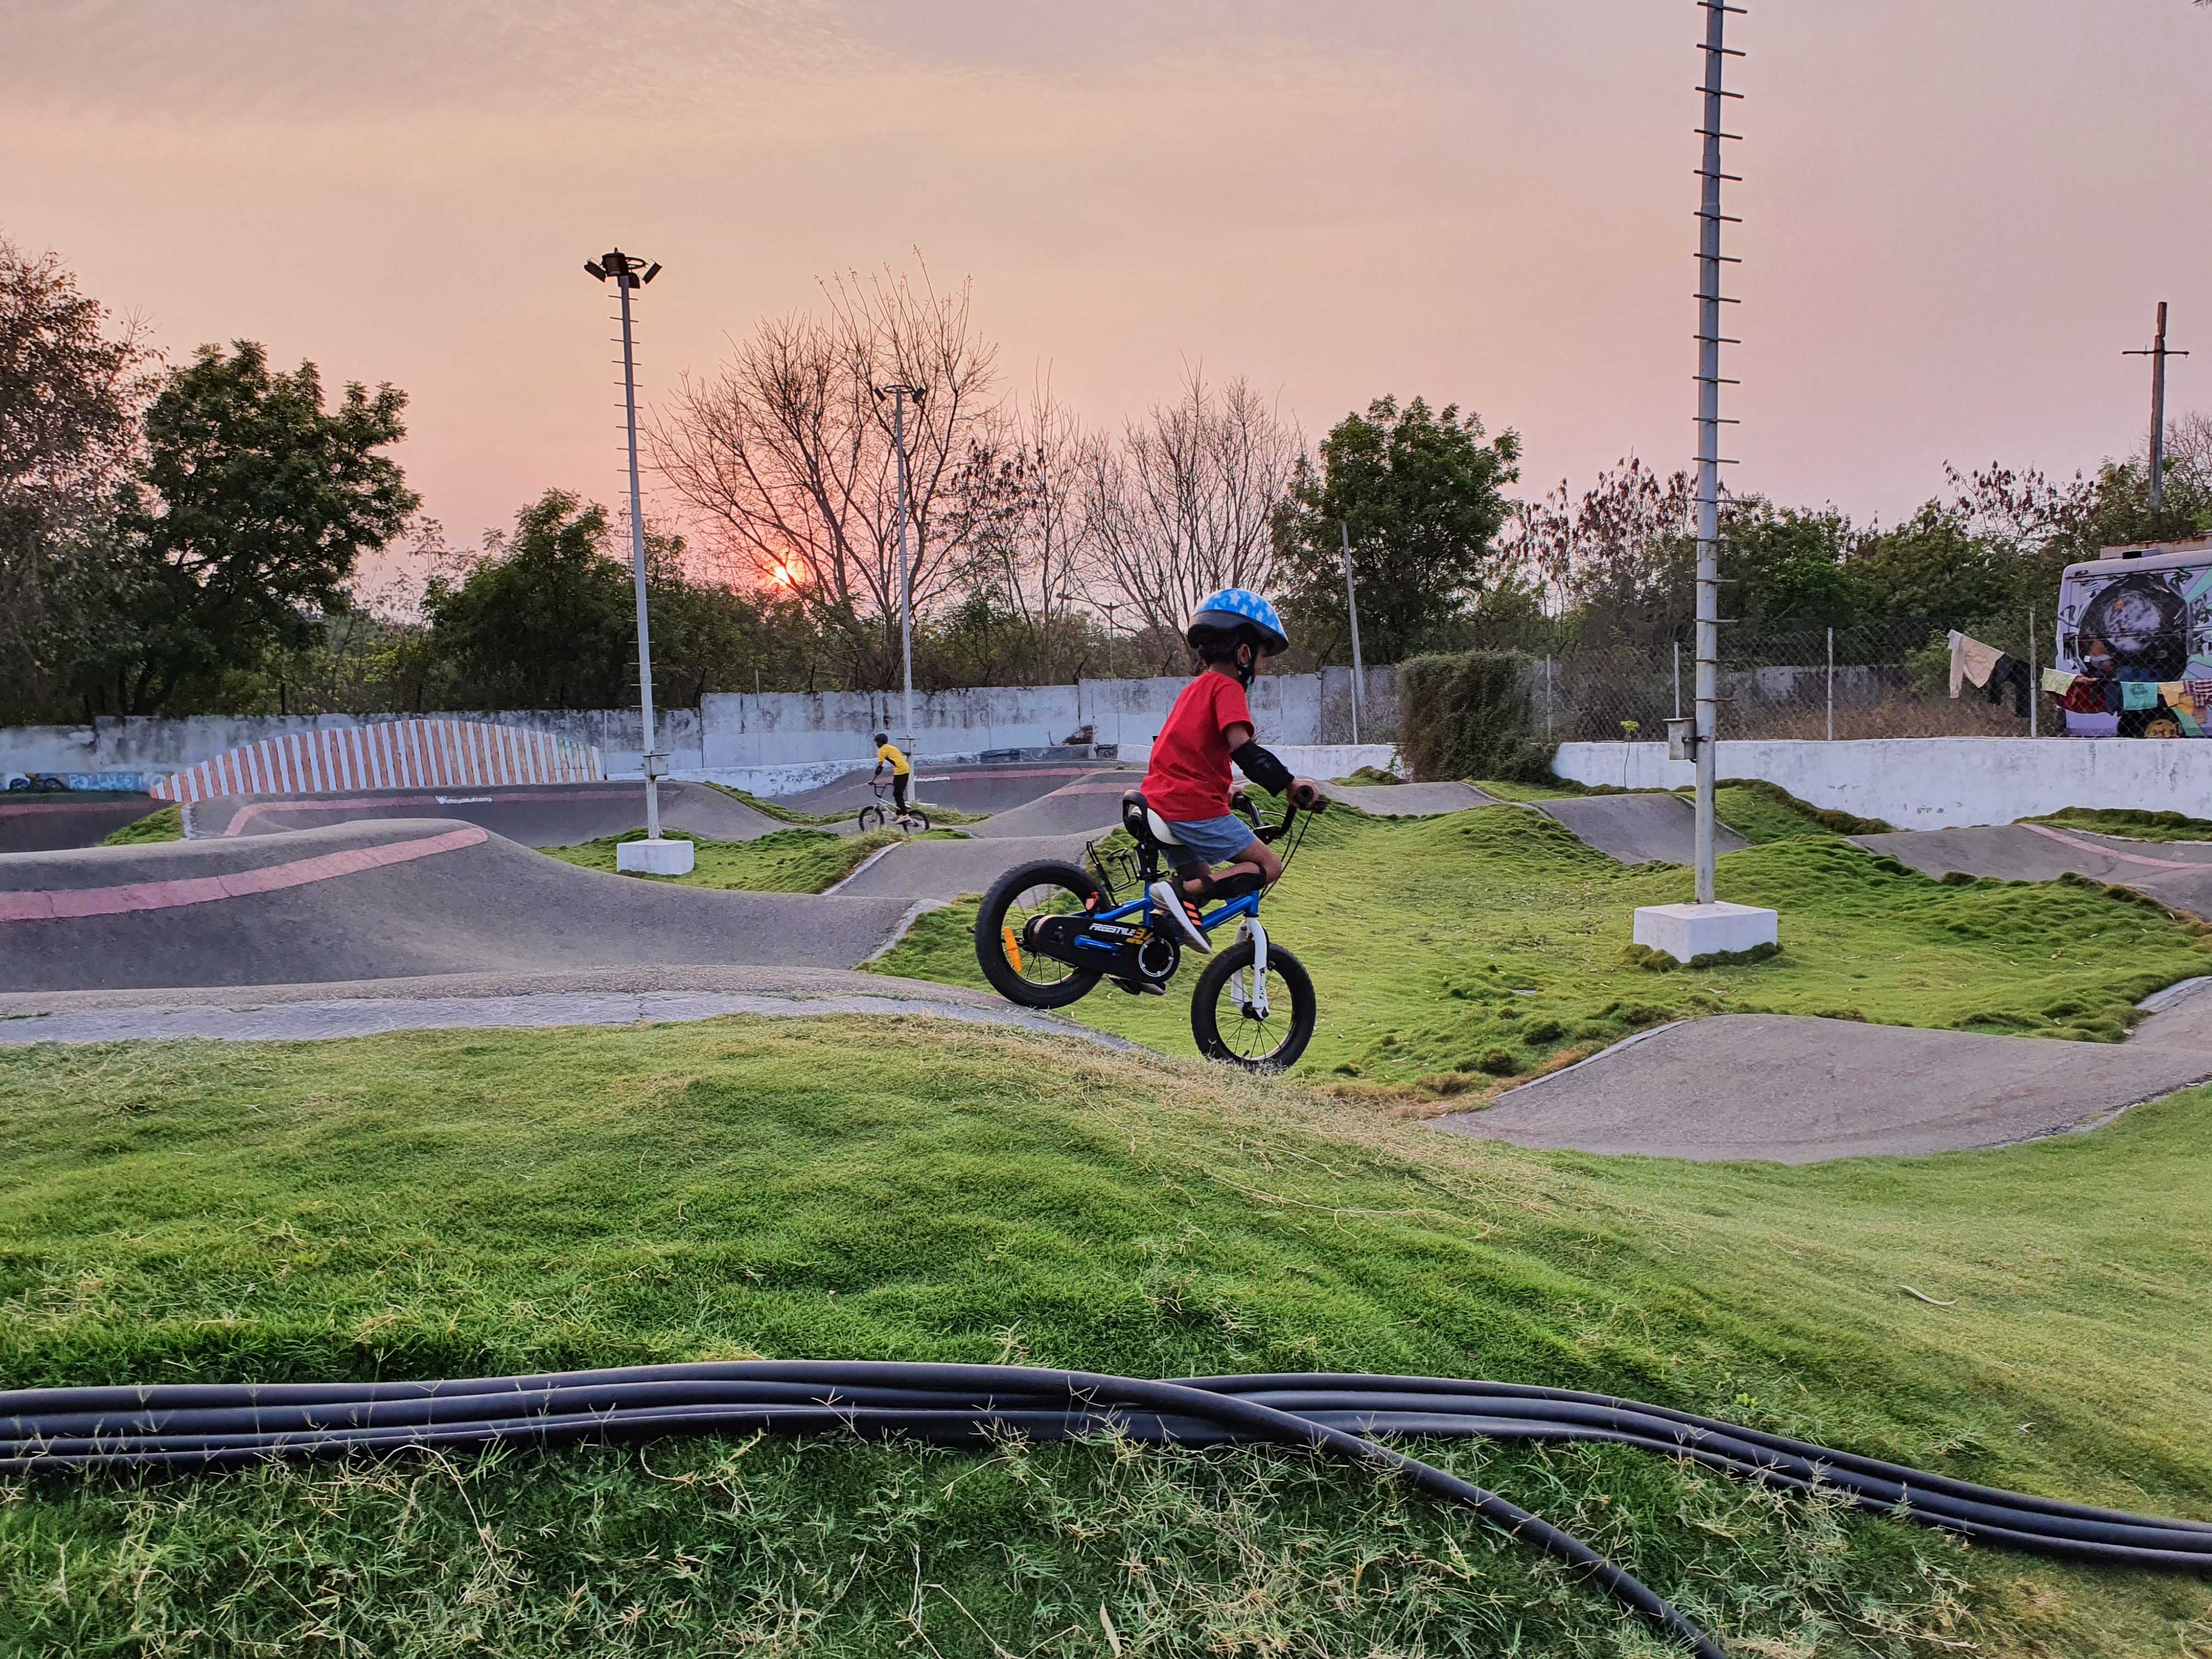 child riding a cycle on a pump track